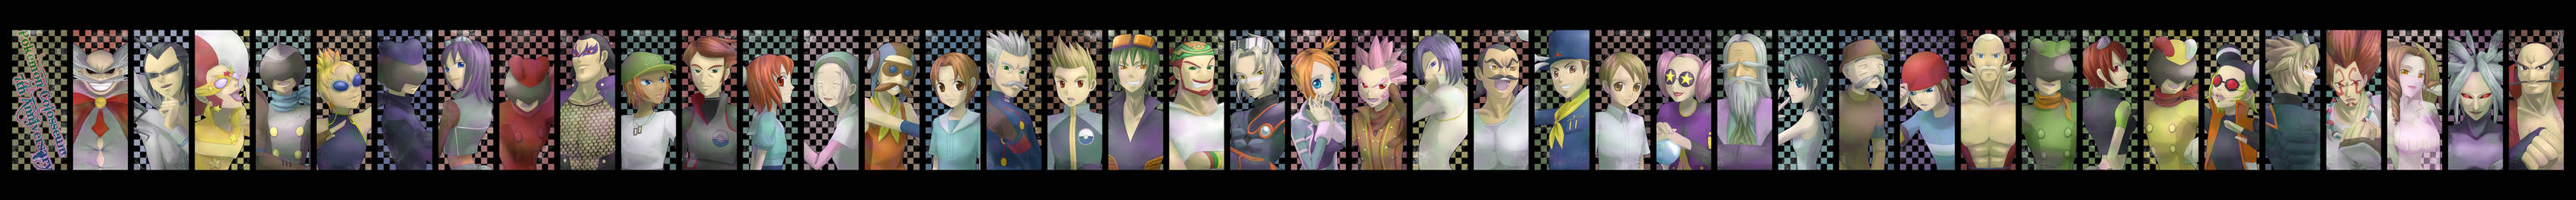 Pokemon Colosseum 7th